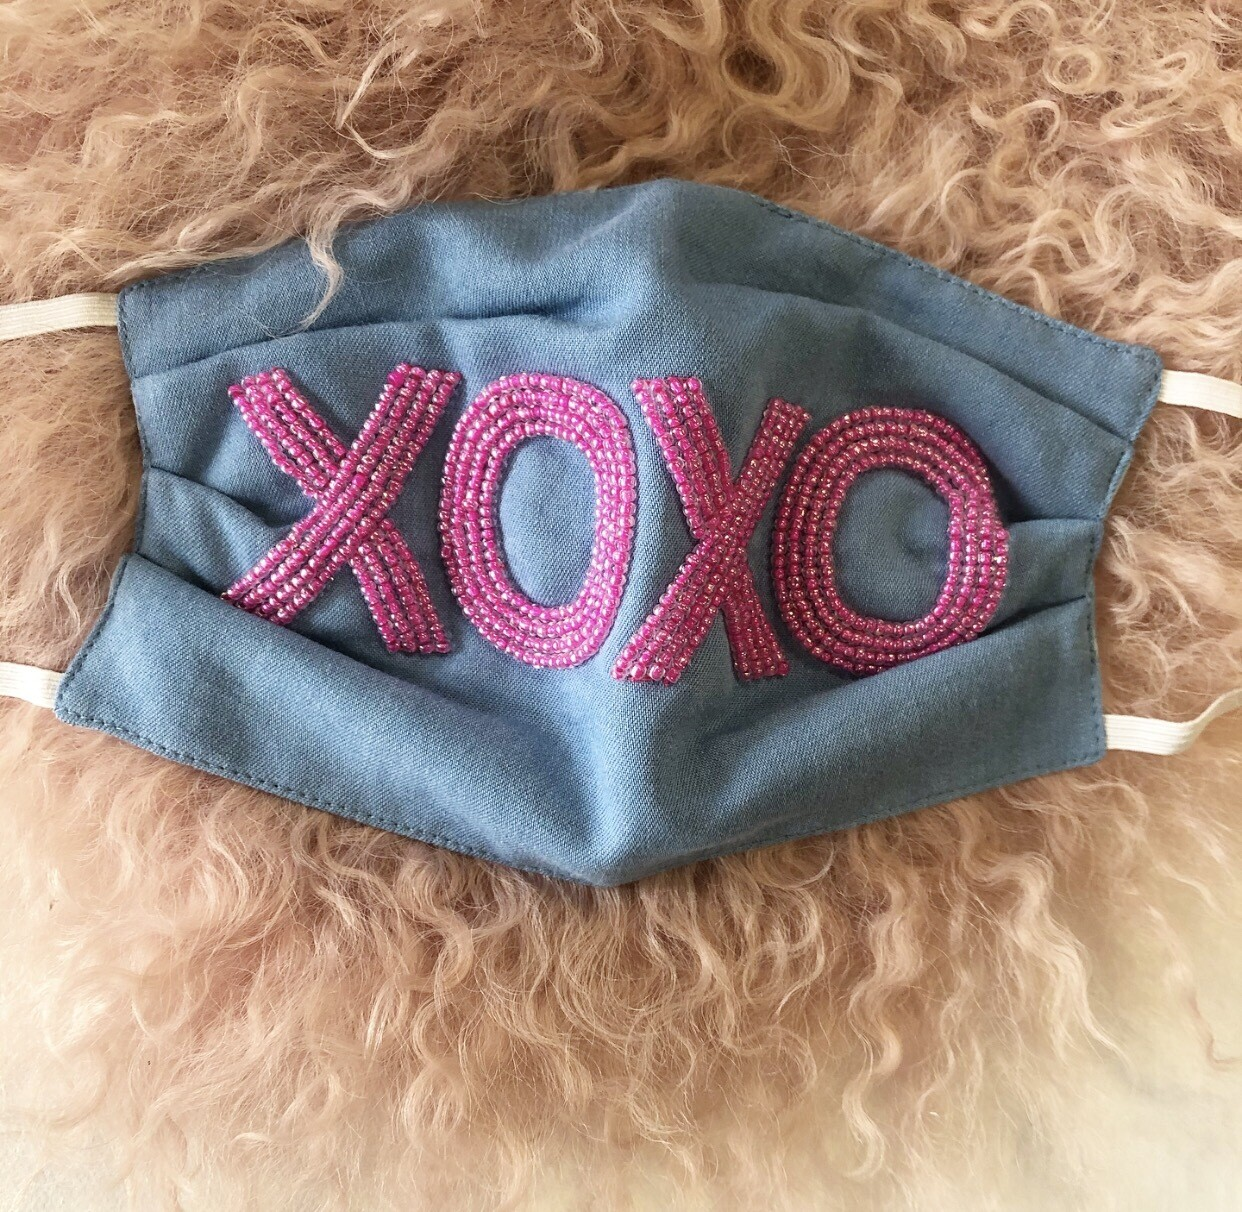 Preorder Xoxo Mask |Ships In 3-4 Weeks|